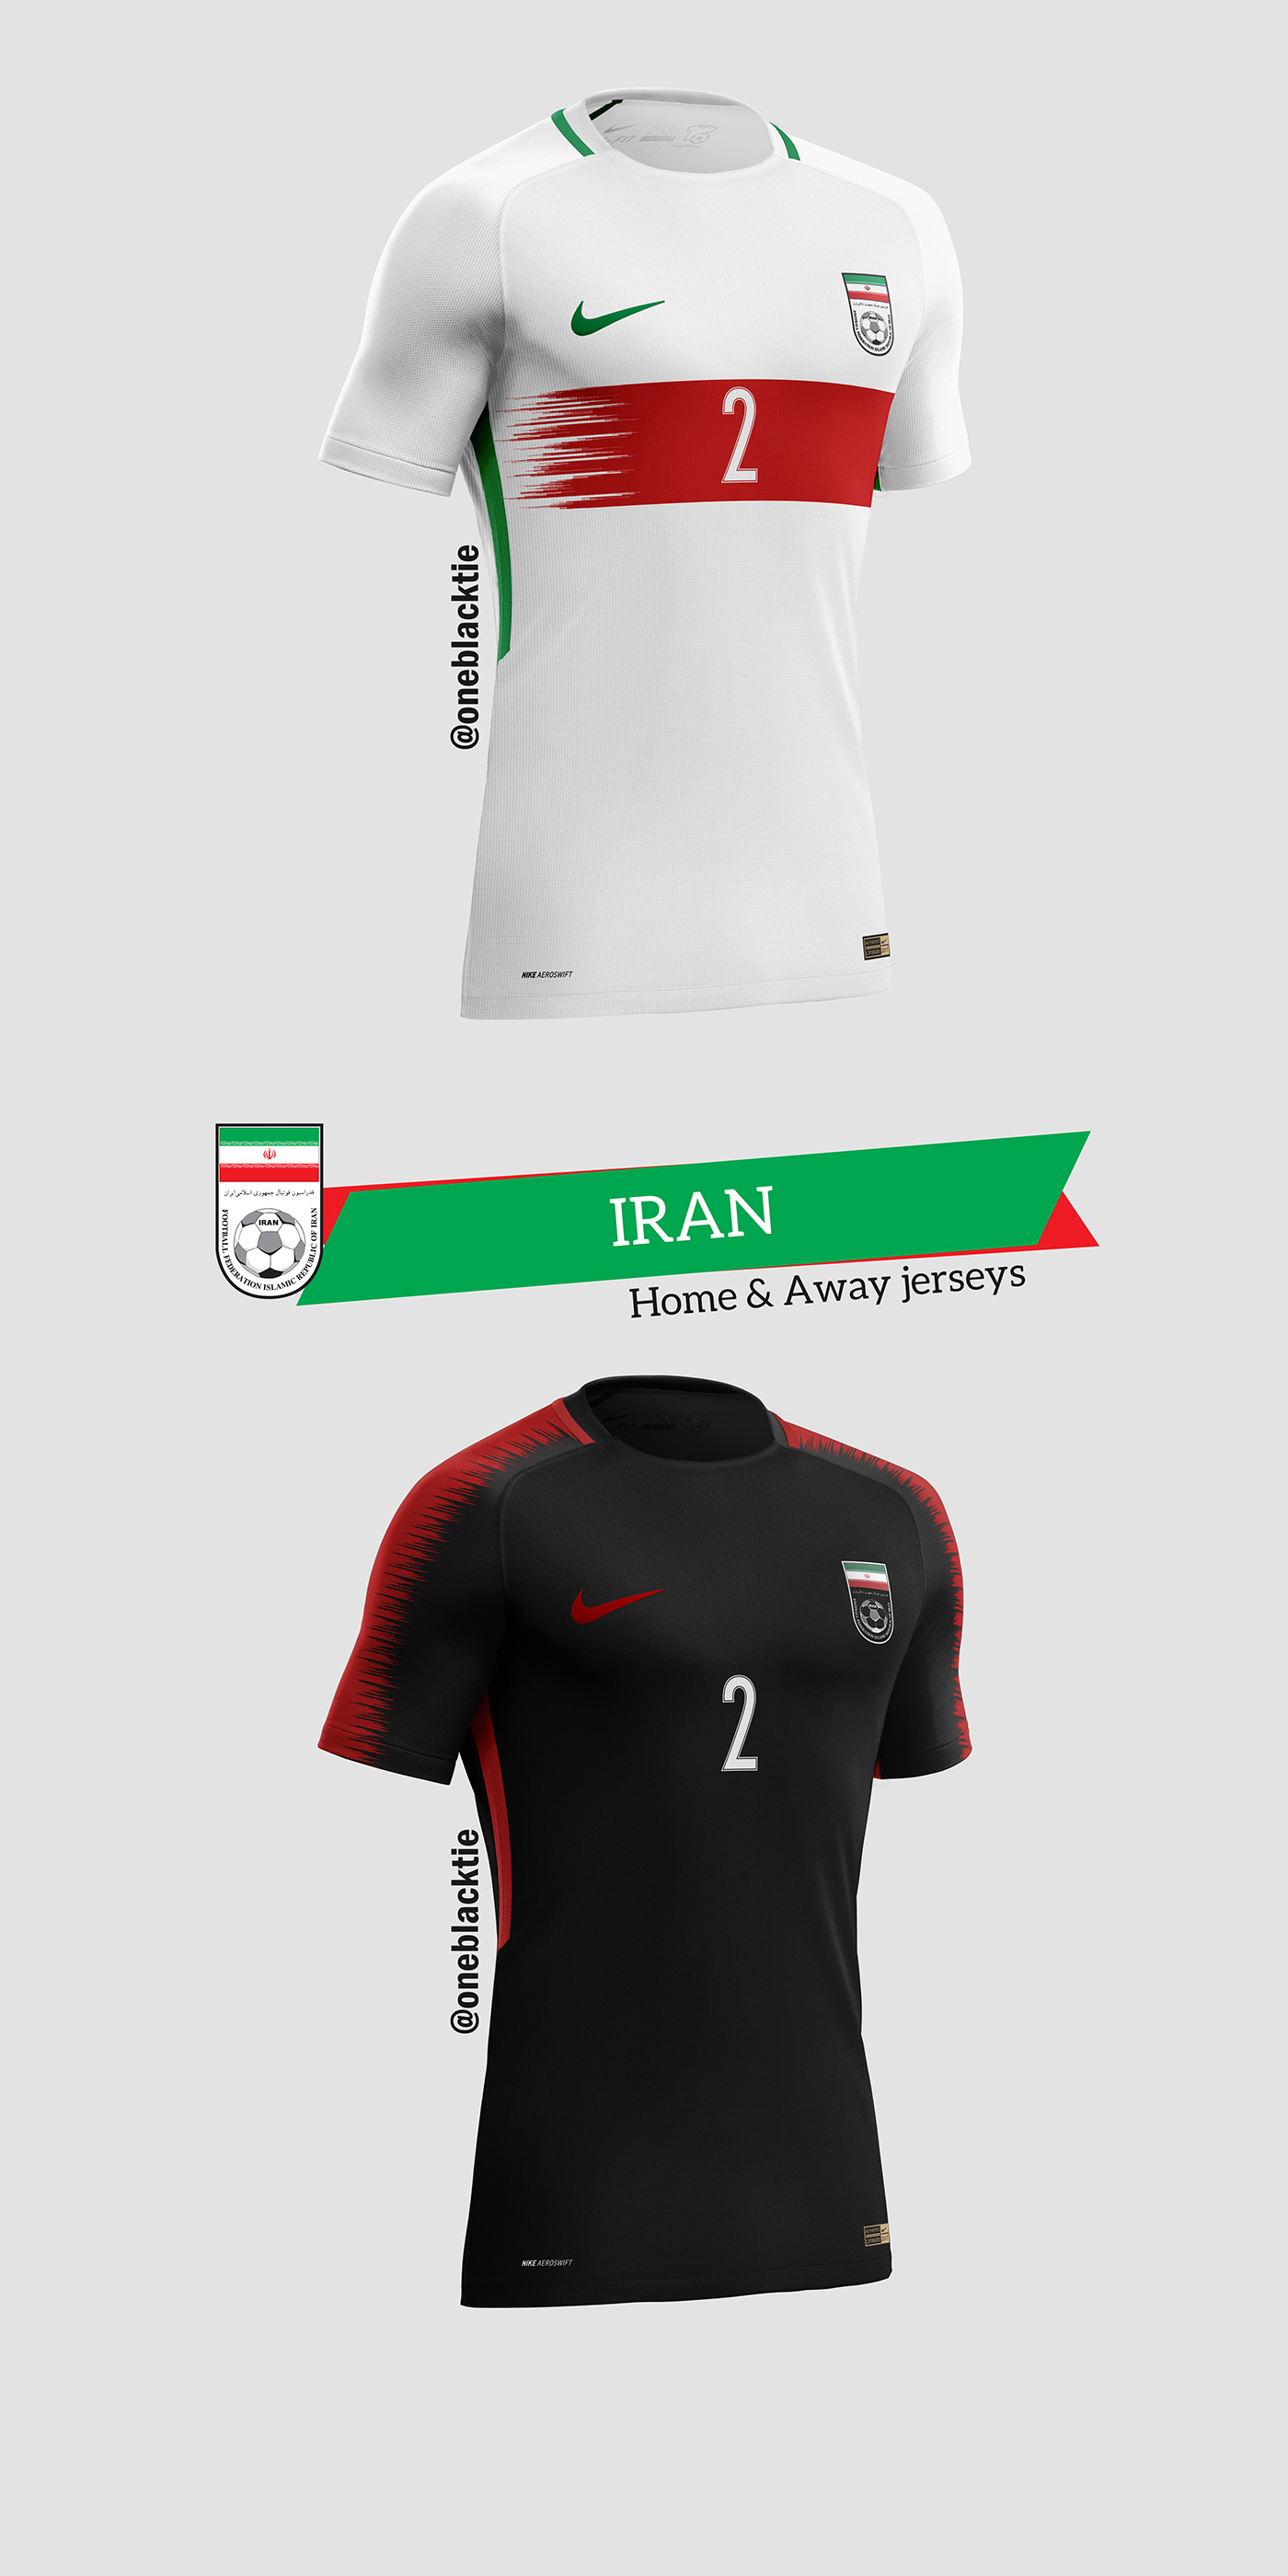 Nike FIFA World Cup Russia 2018 Concept Jerseys on Behance 8df7af702